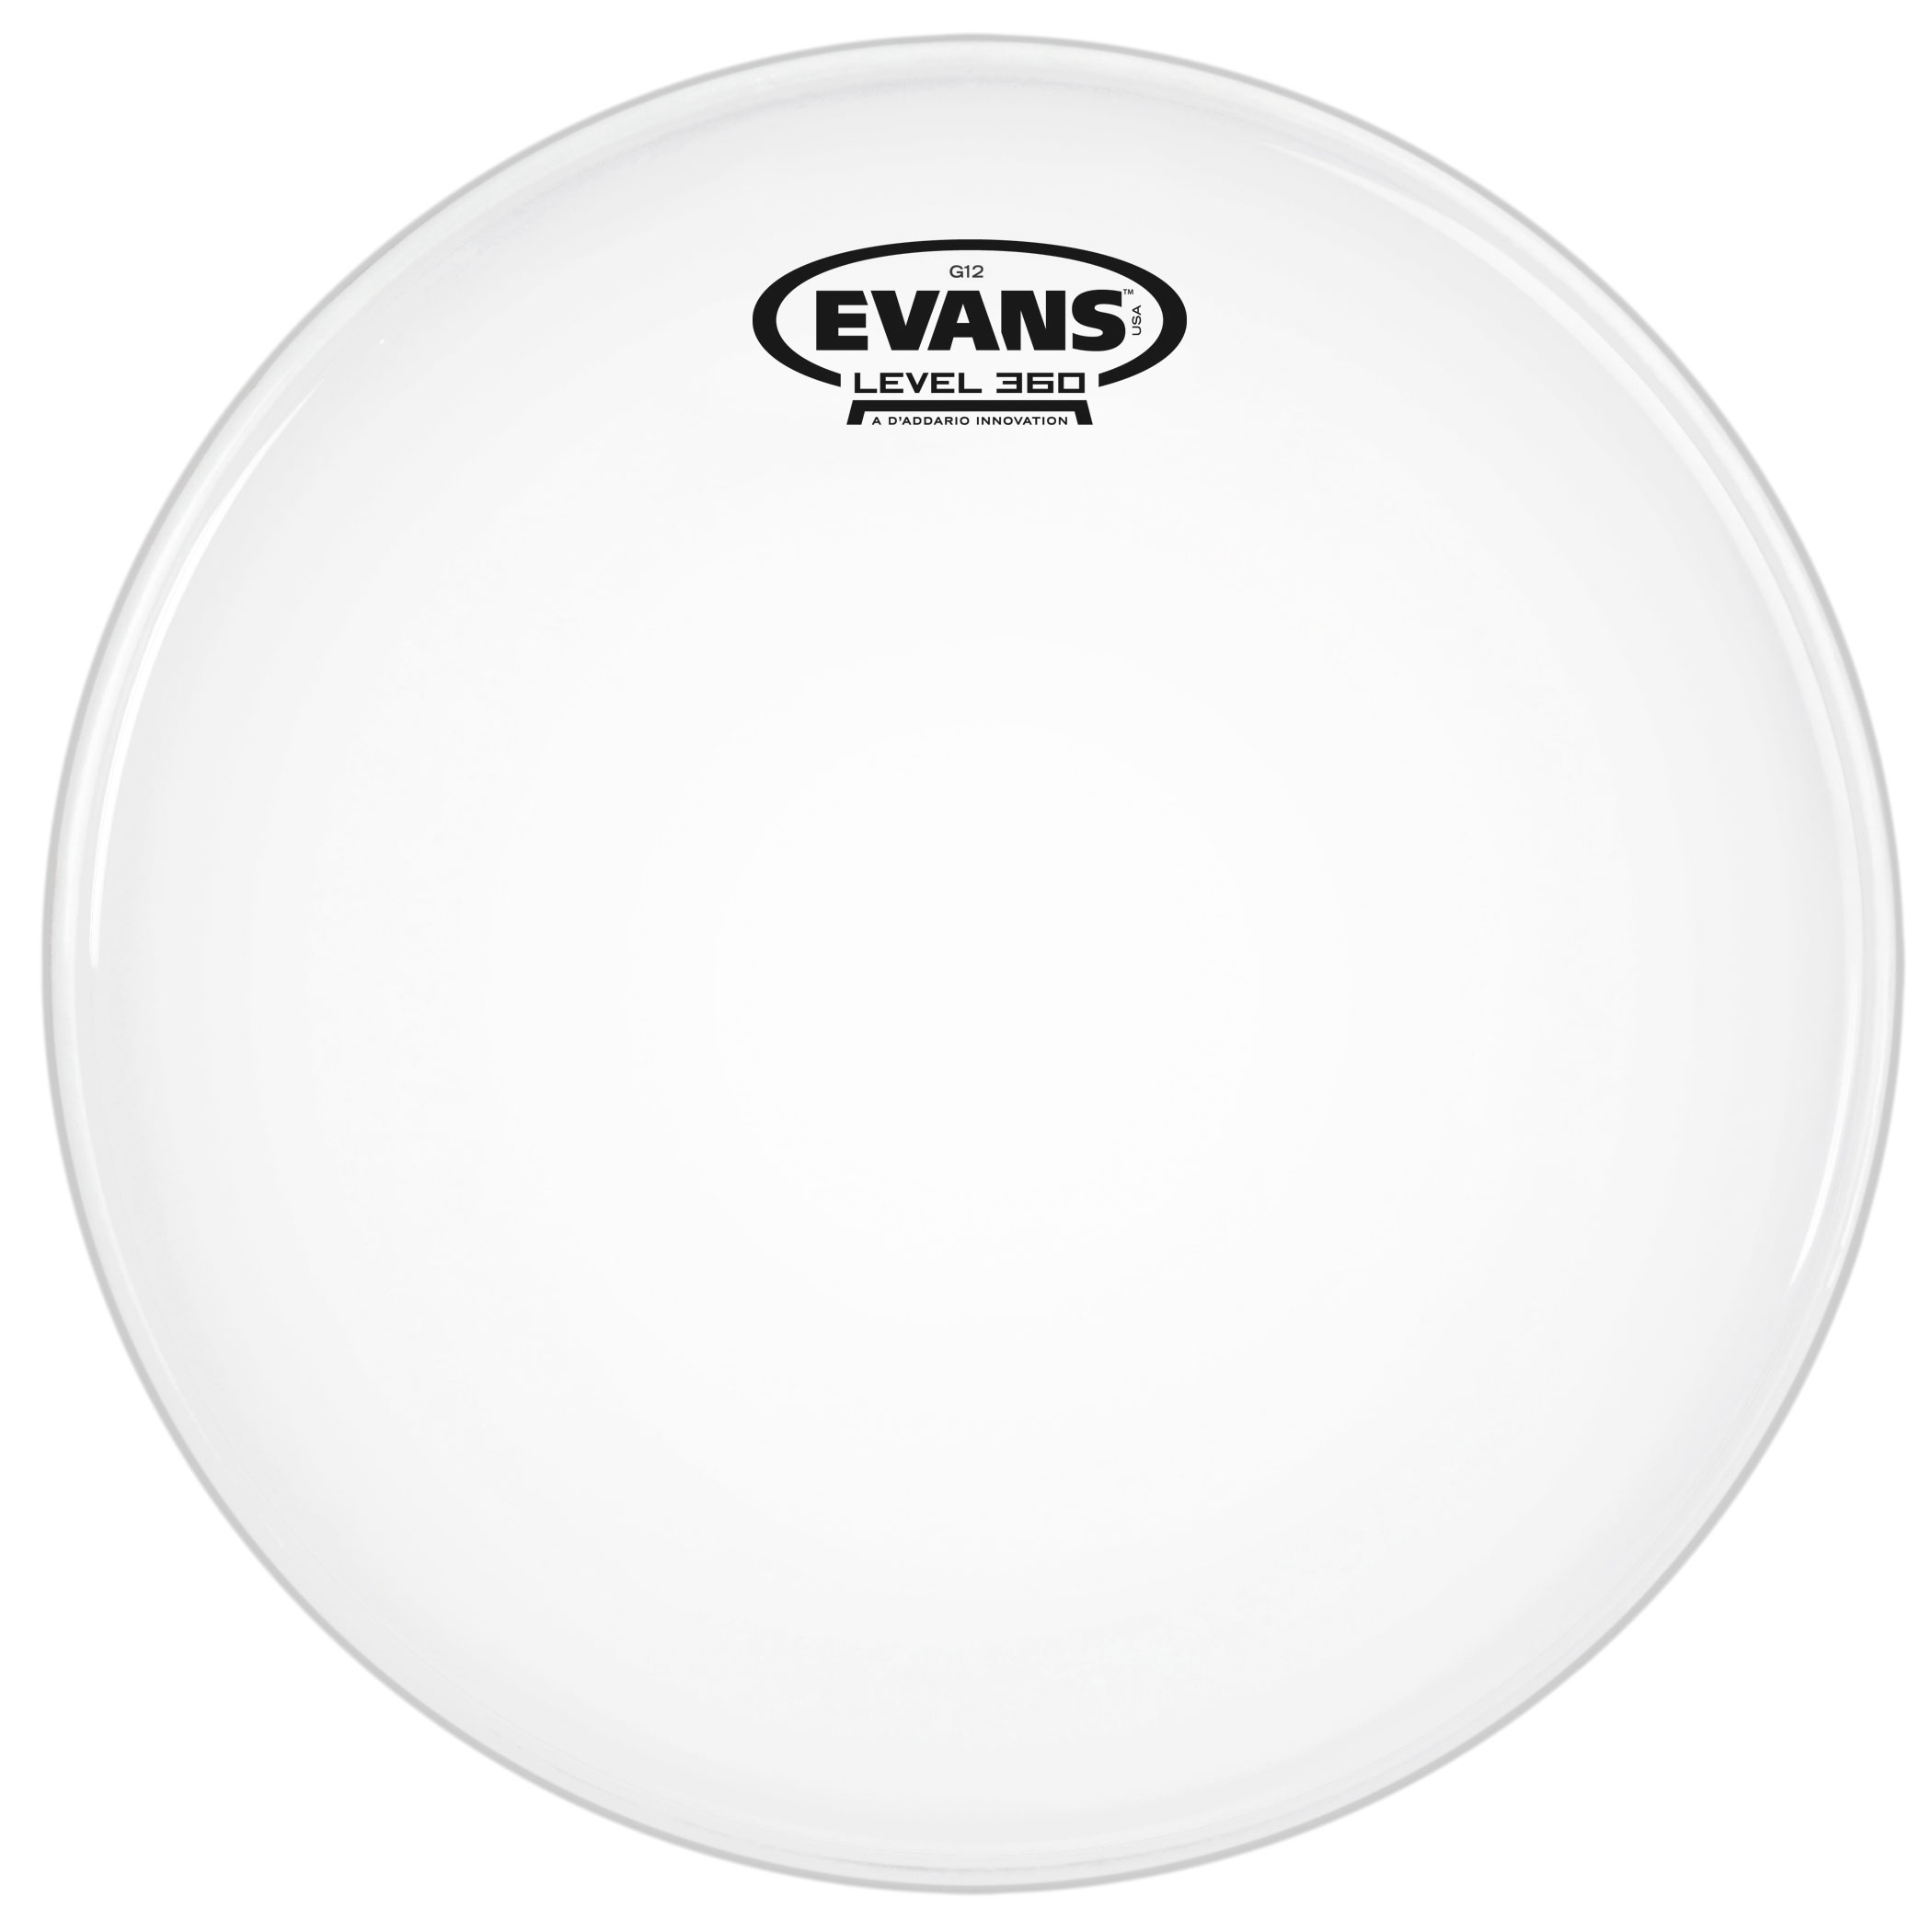 "Evans 18"" G12 Coated Head"